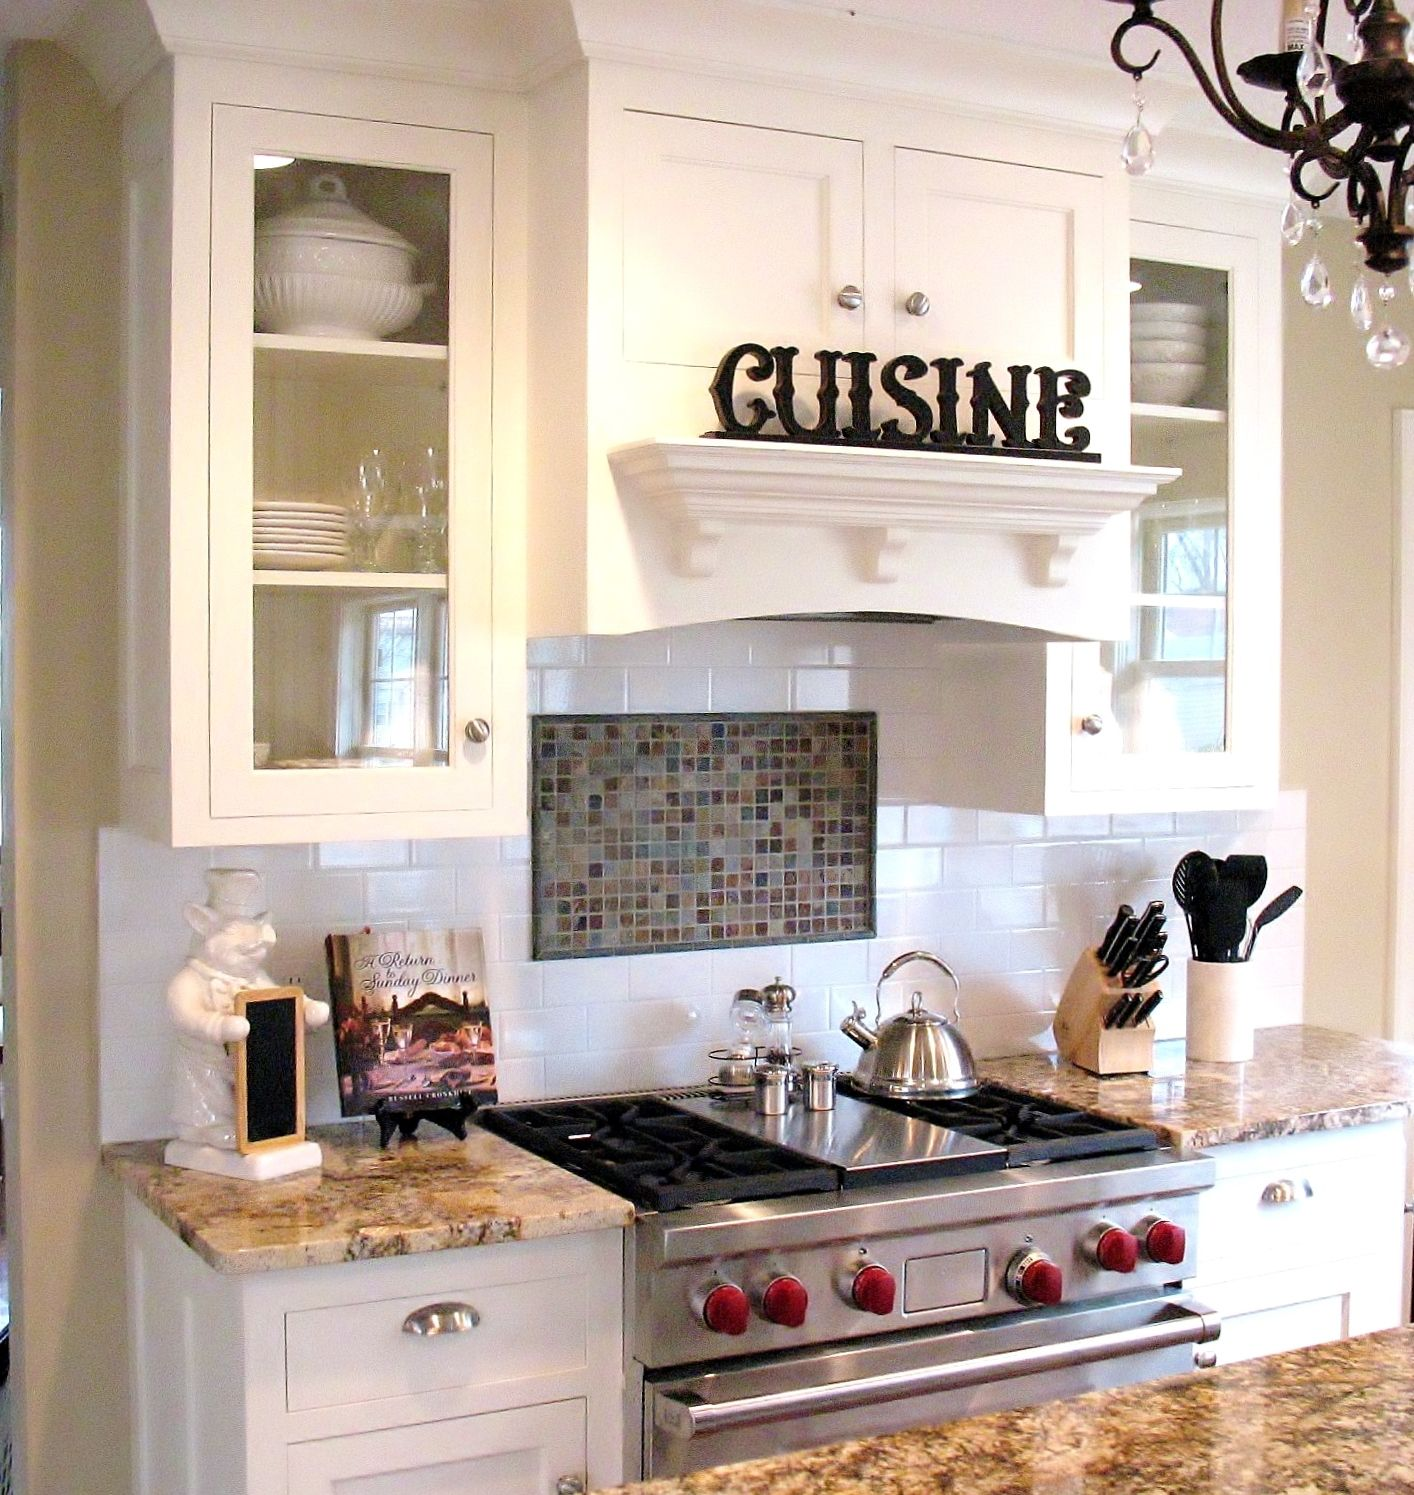 What style! Love how the space above the stove is used for ...